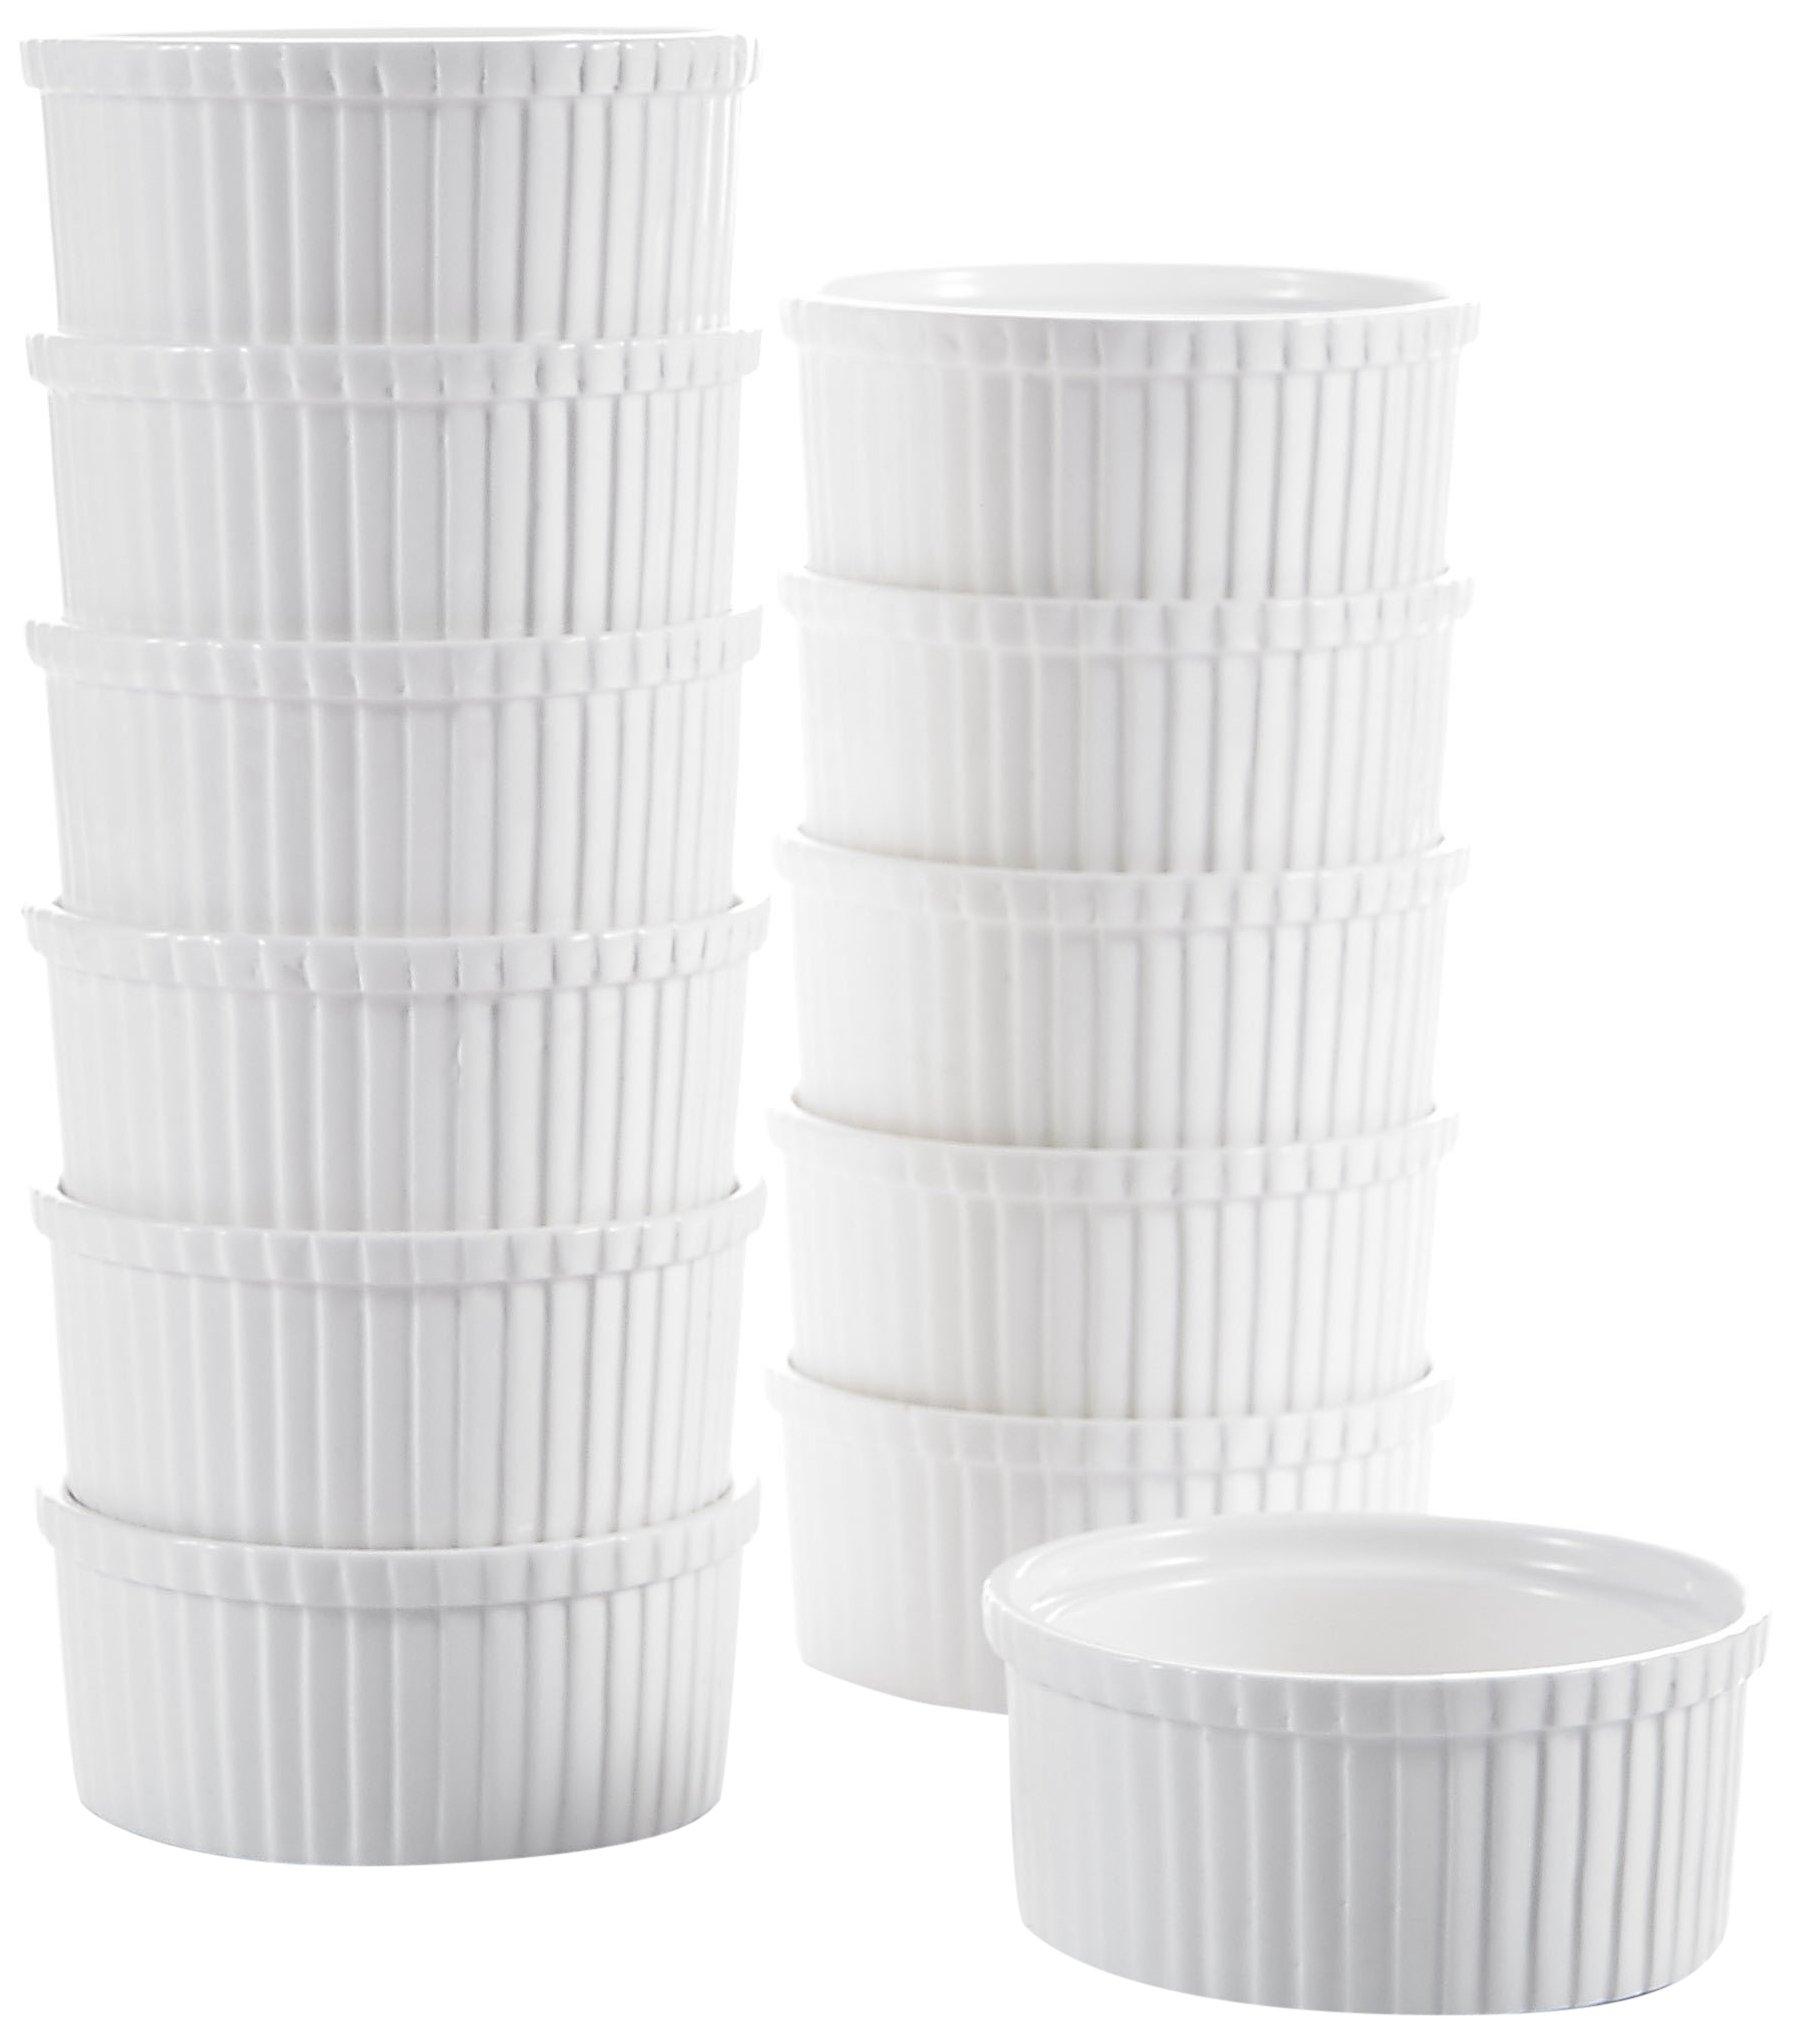 "Malacasa, Series Ramekin, 3.5"" Ivory White Porcelain Serving Dishes Dipping Bowls, 6.5oz Ramekins Souffle Dish Set of 12"